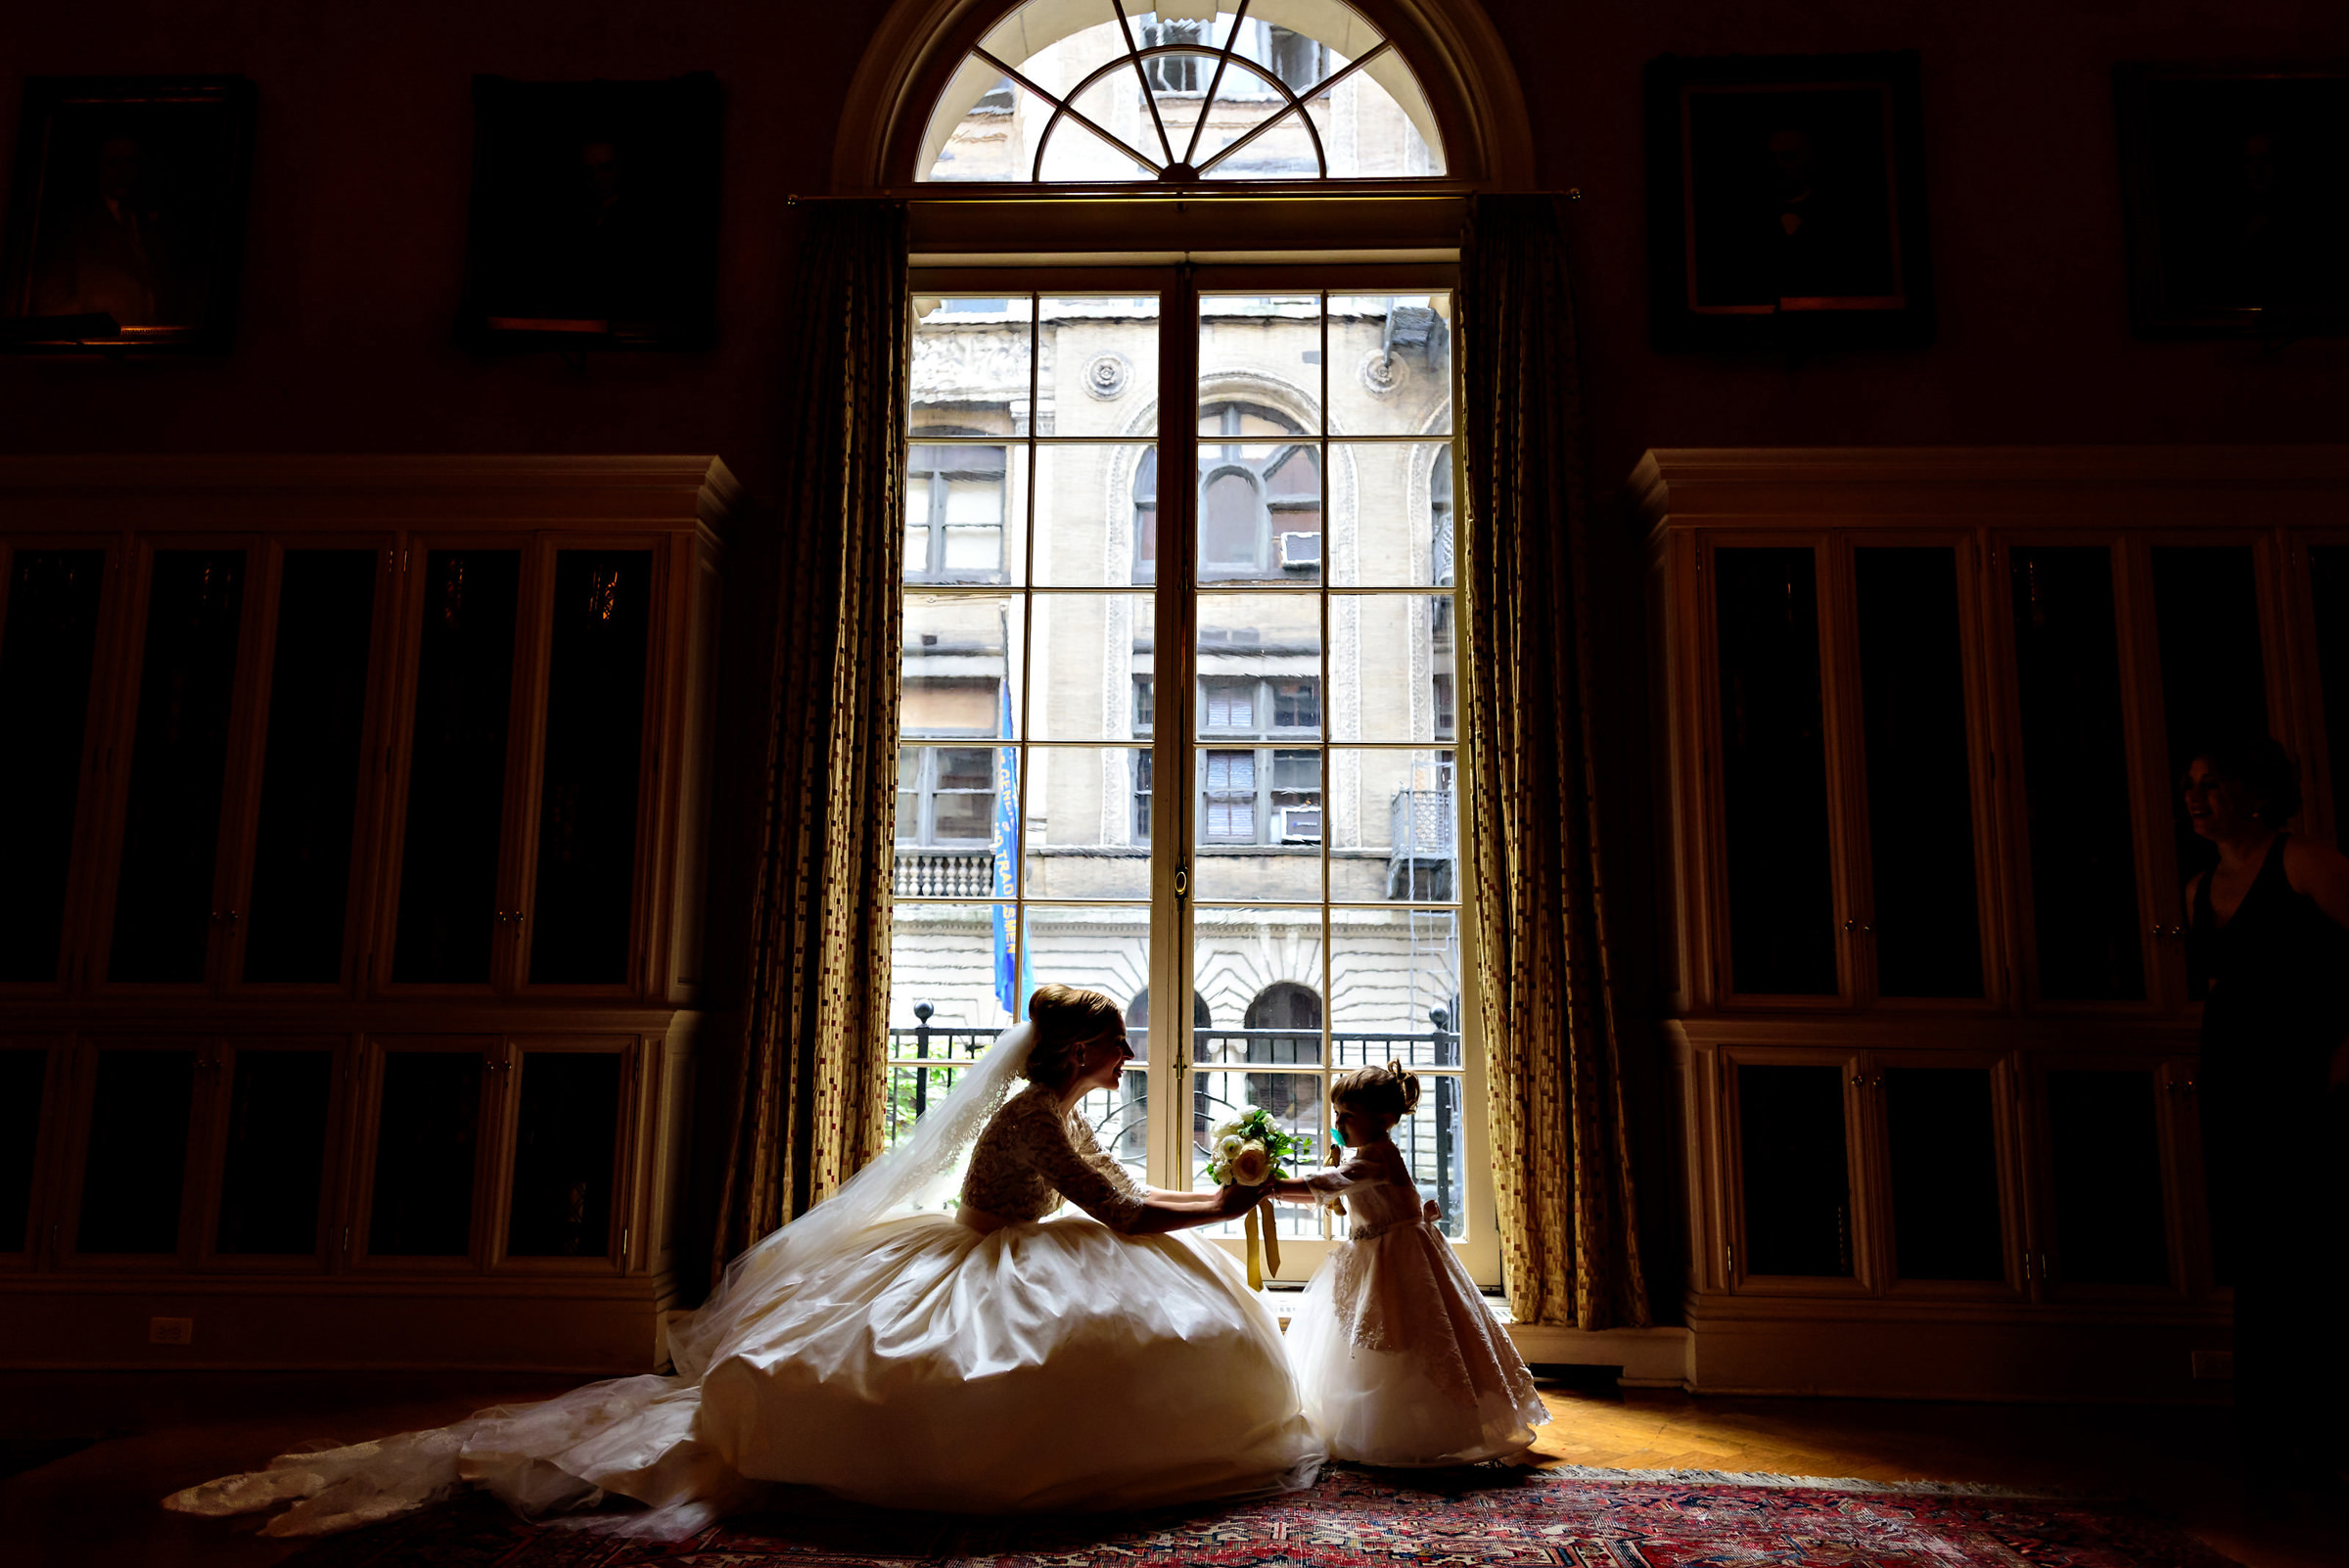 Little girl hands bouquet to bride in front of arched window - photo by Moore Photography